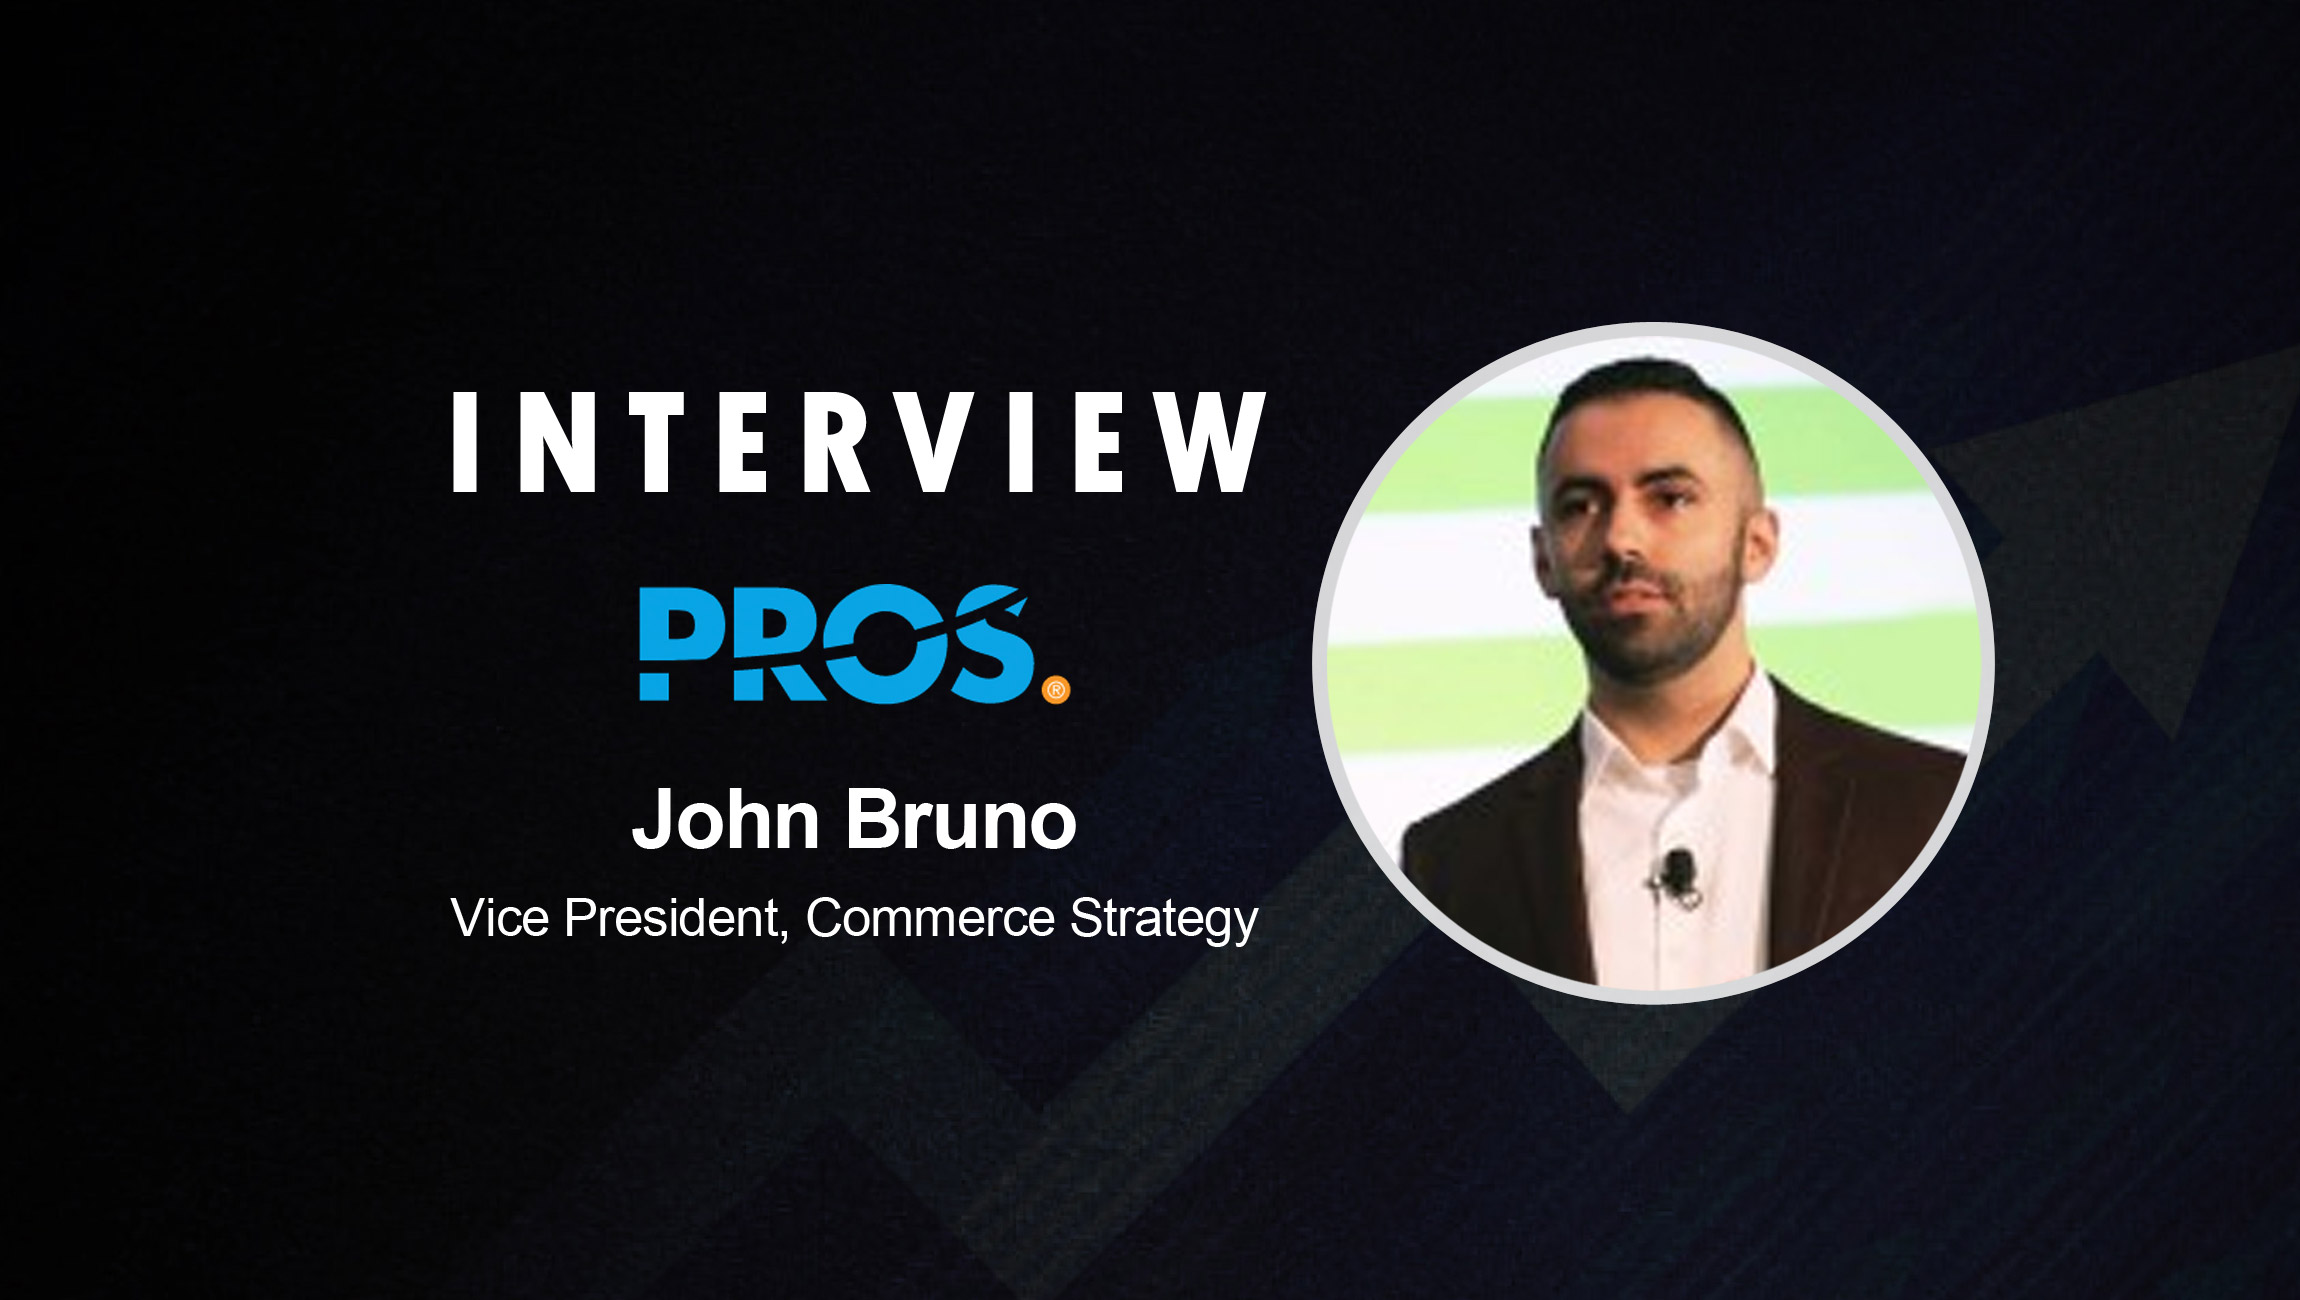 SalesTechStar Interview with John Bruno, Vice President, Commerce Strategy at PROS